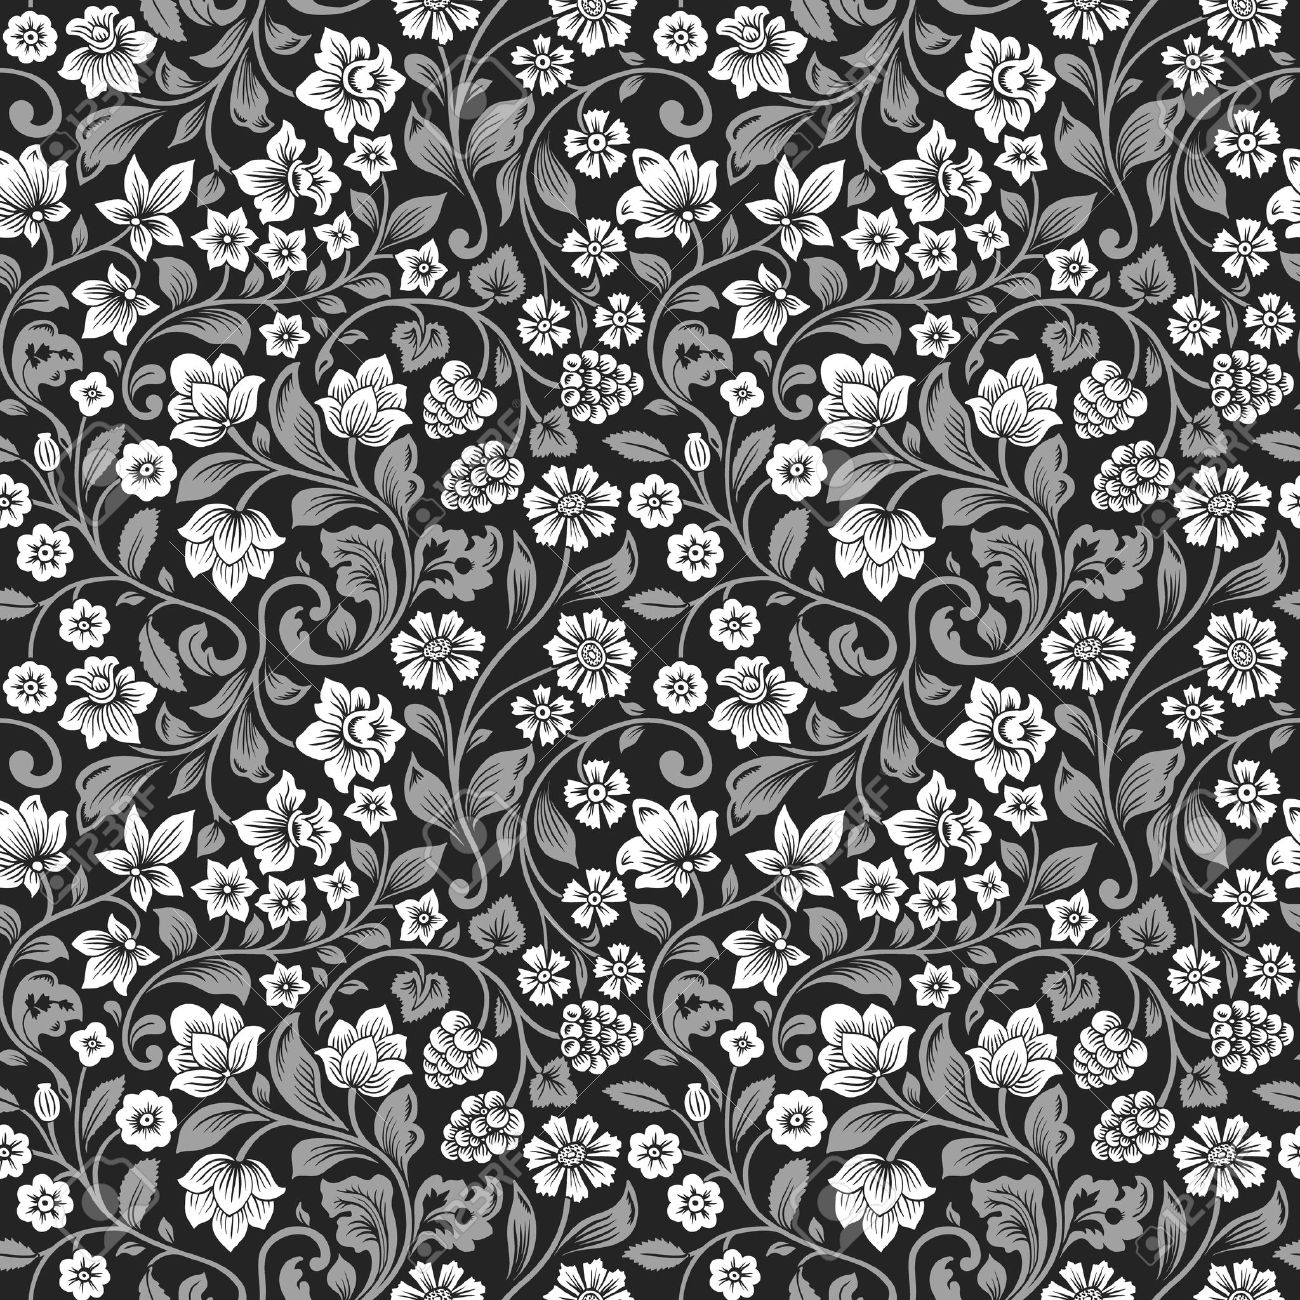 Vector Seamless Vintage Floral Pattern Stylized Silhouettes Of